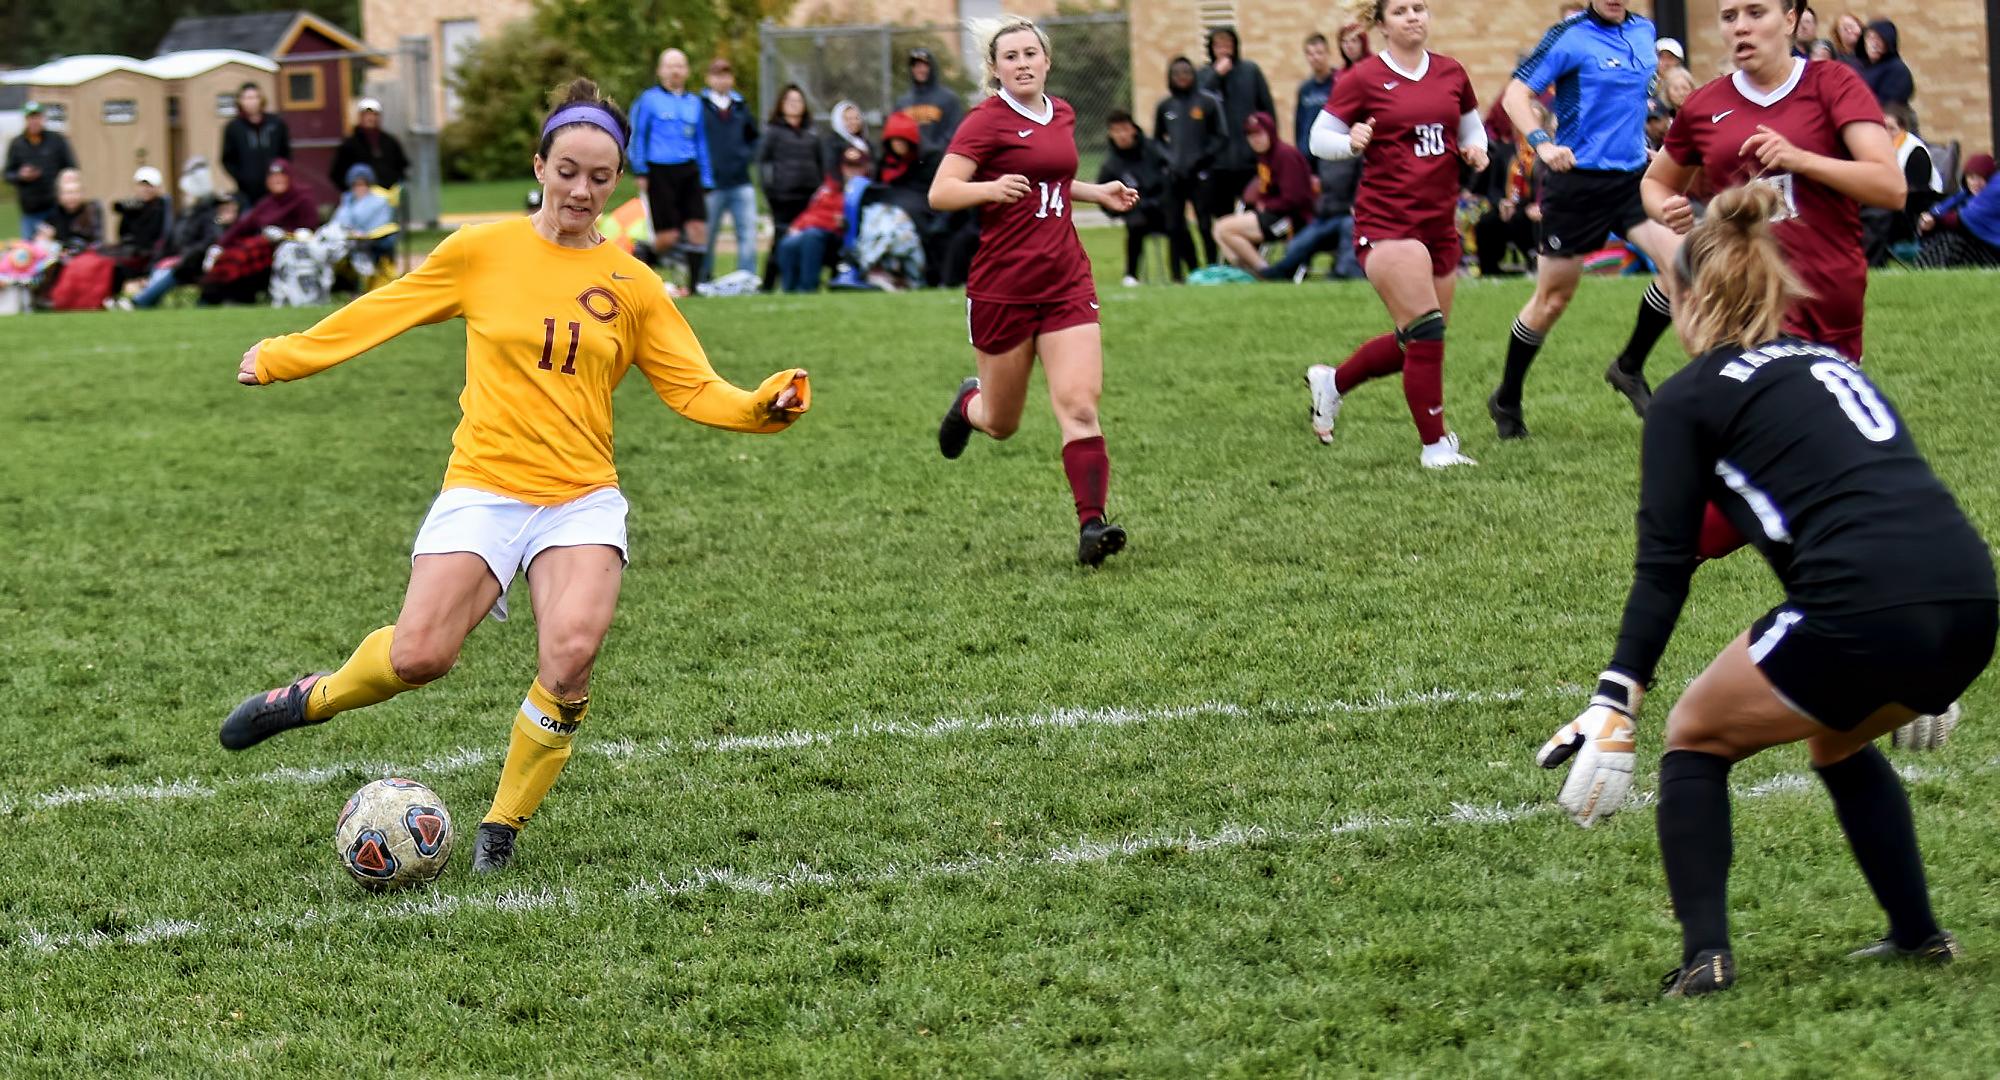 Senior Karsen Granning takes a shot on goal in the second half of the Cobbers' 2-1 win over Hamline. Garanning scored the game-winning goal in the final seven minutes of play.